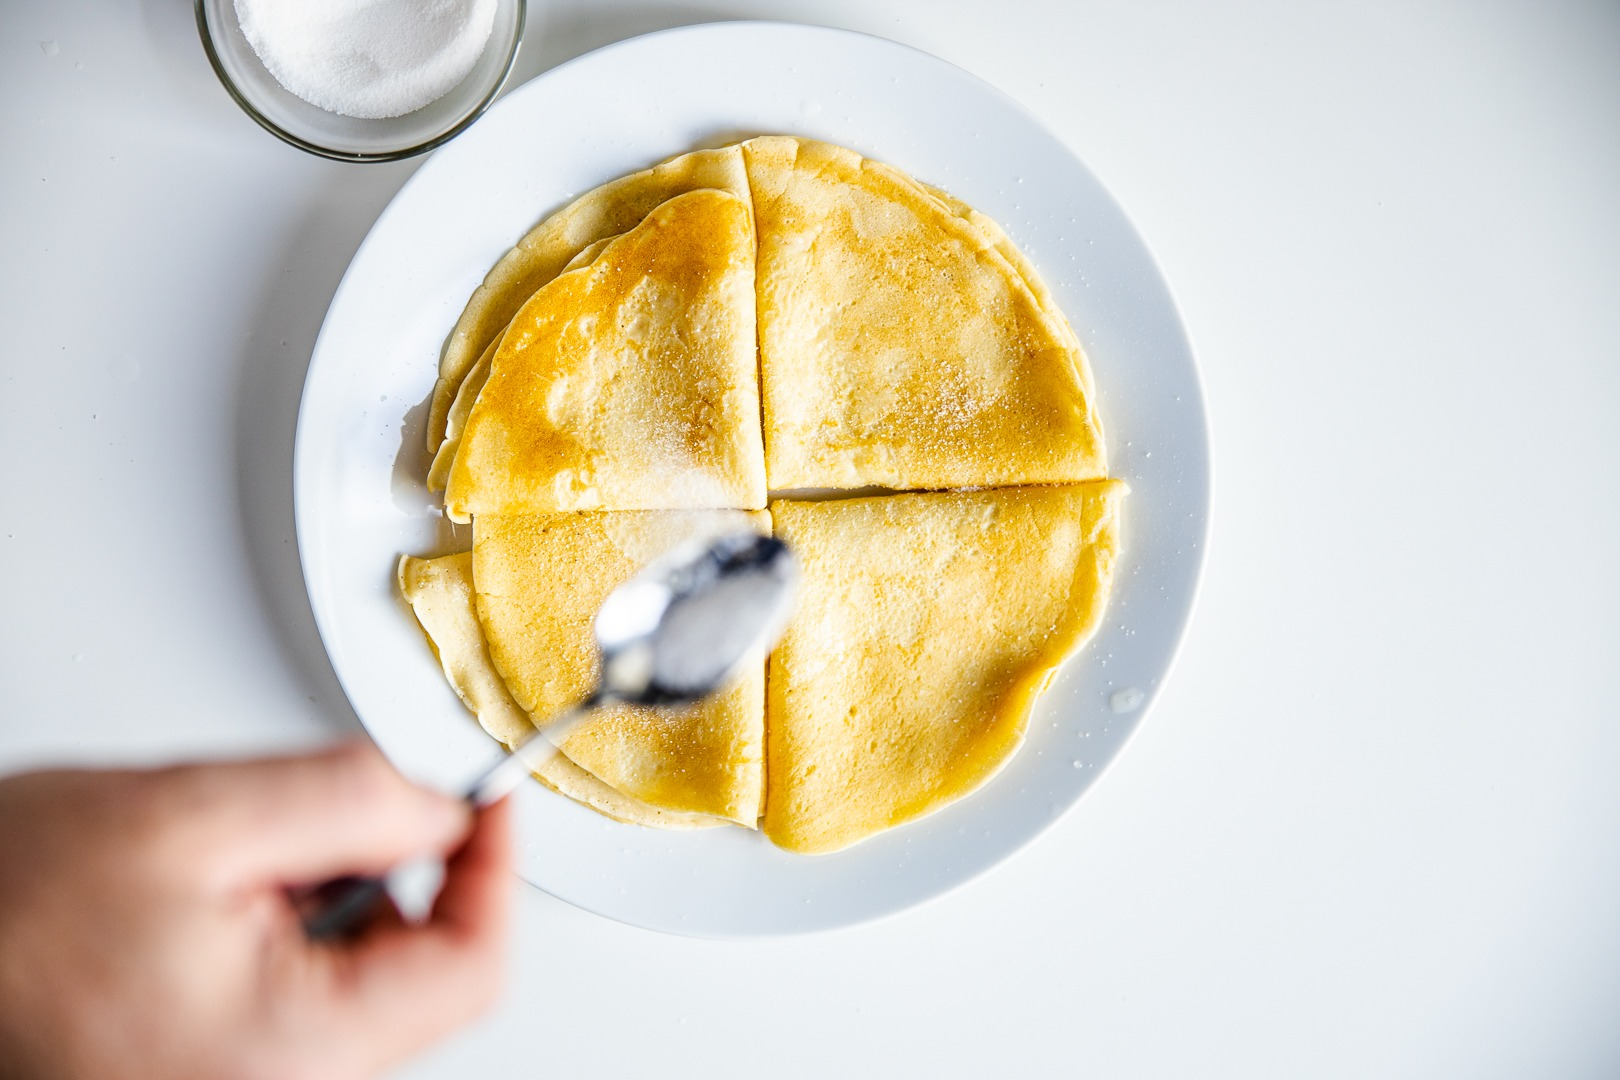 Sugaring the crepes